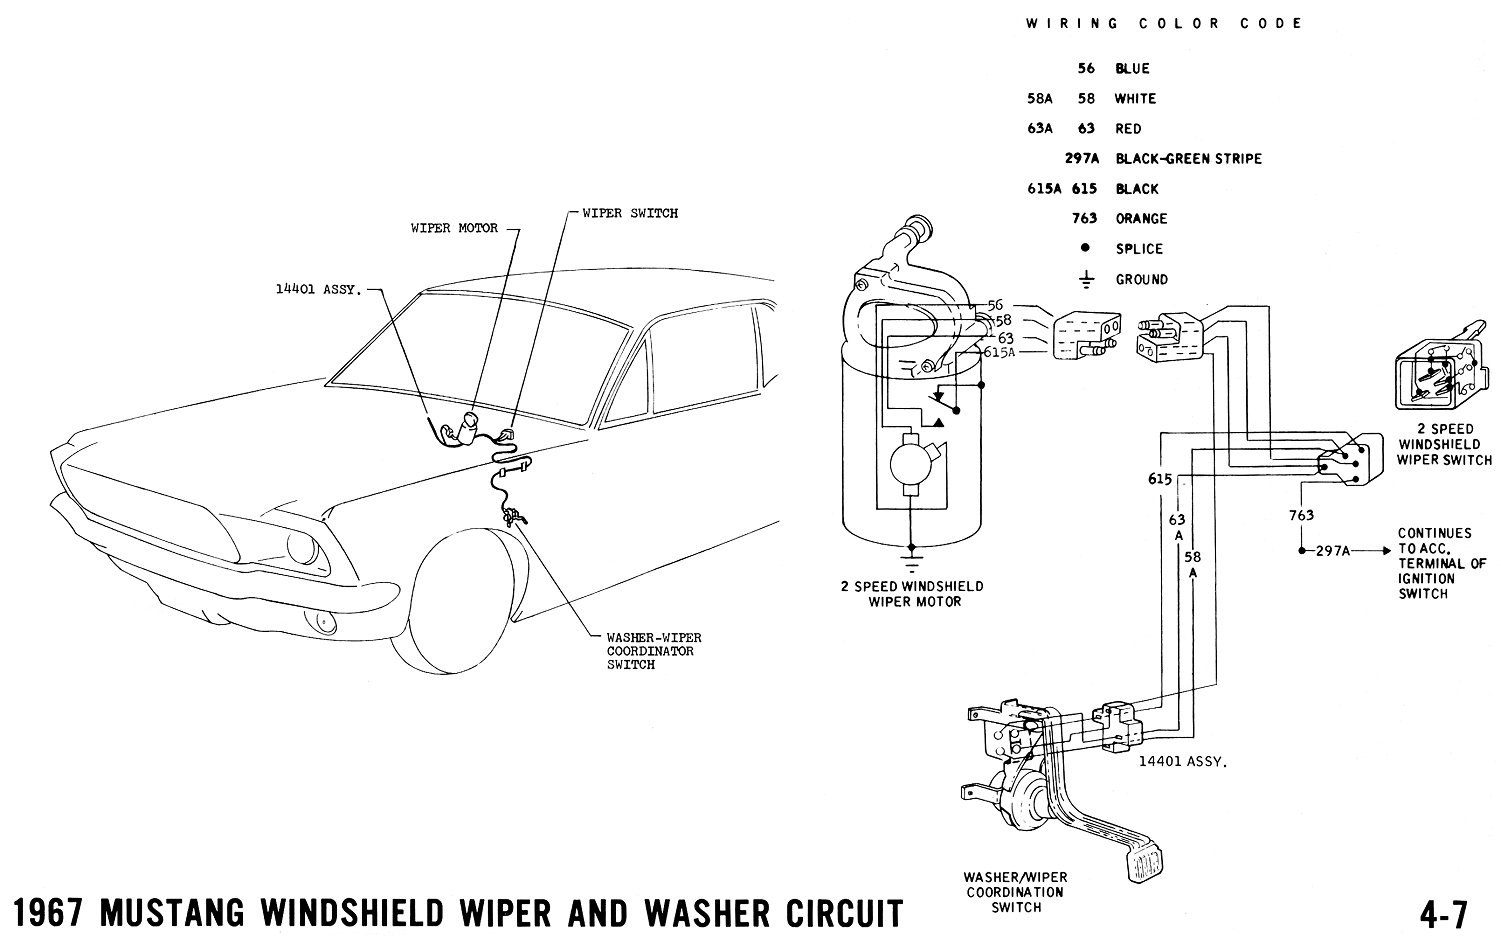 1967 Mustang Wiring And Vacuum Diagrams Average Joe Restoration Motor Diagram Further Electric 220 To 110 Pictorial Schematic